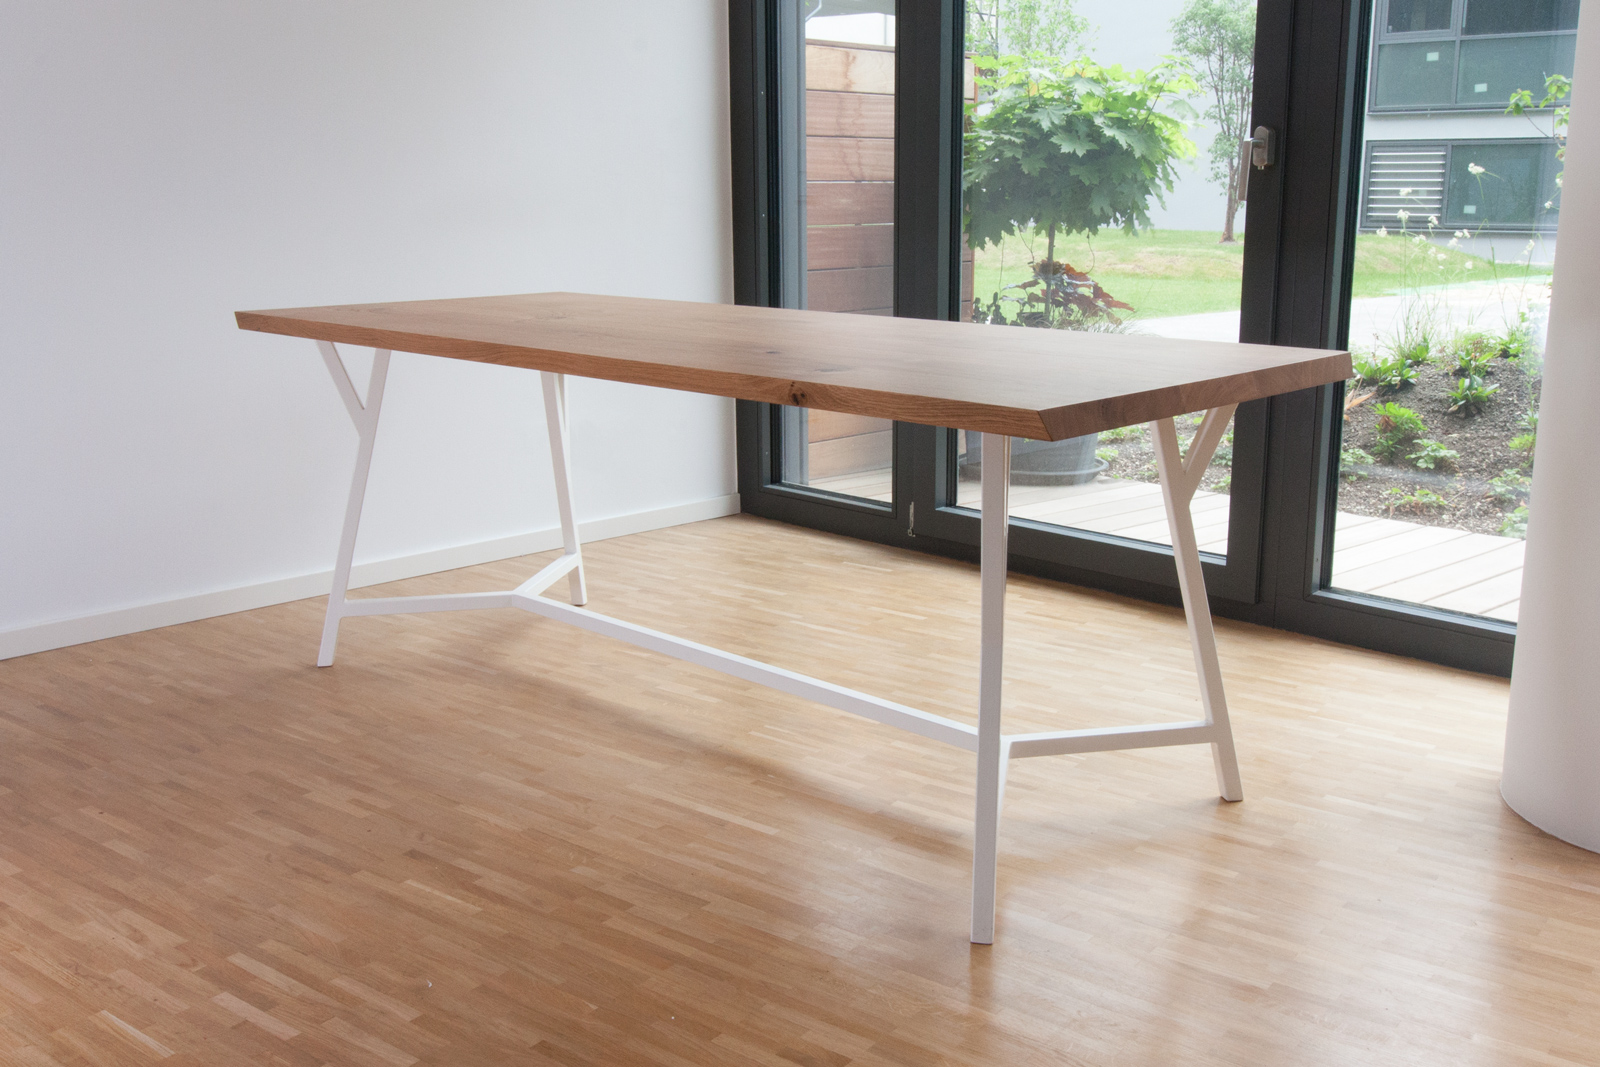 YV Table privat